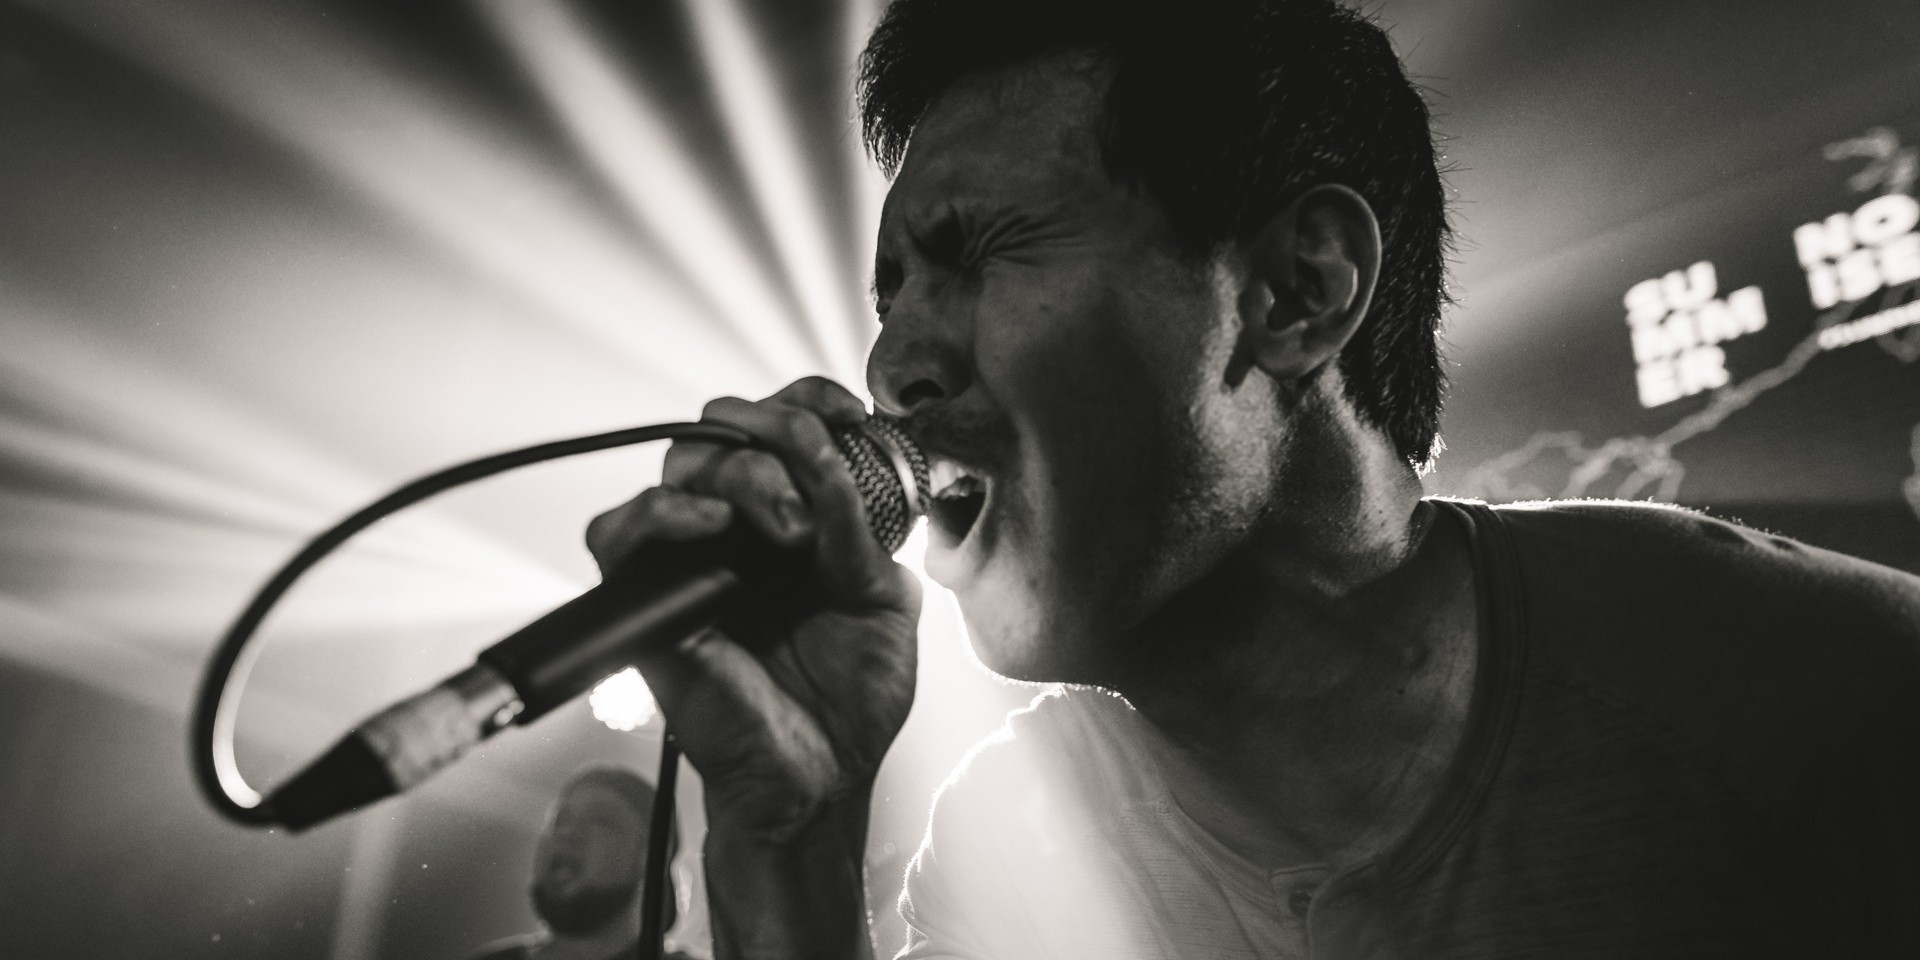 Dicta License calls for 'Bagong Bayani' in new single – listen